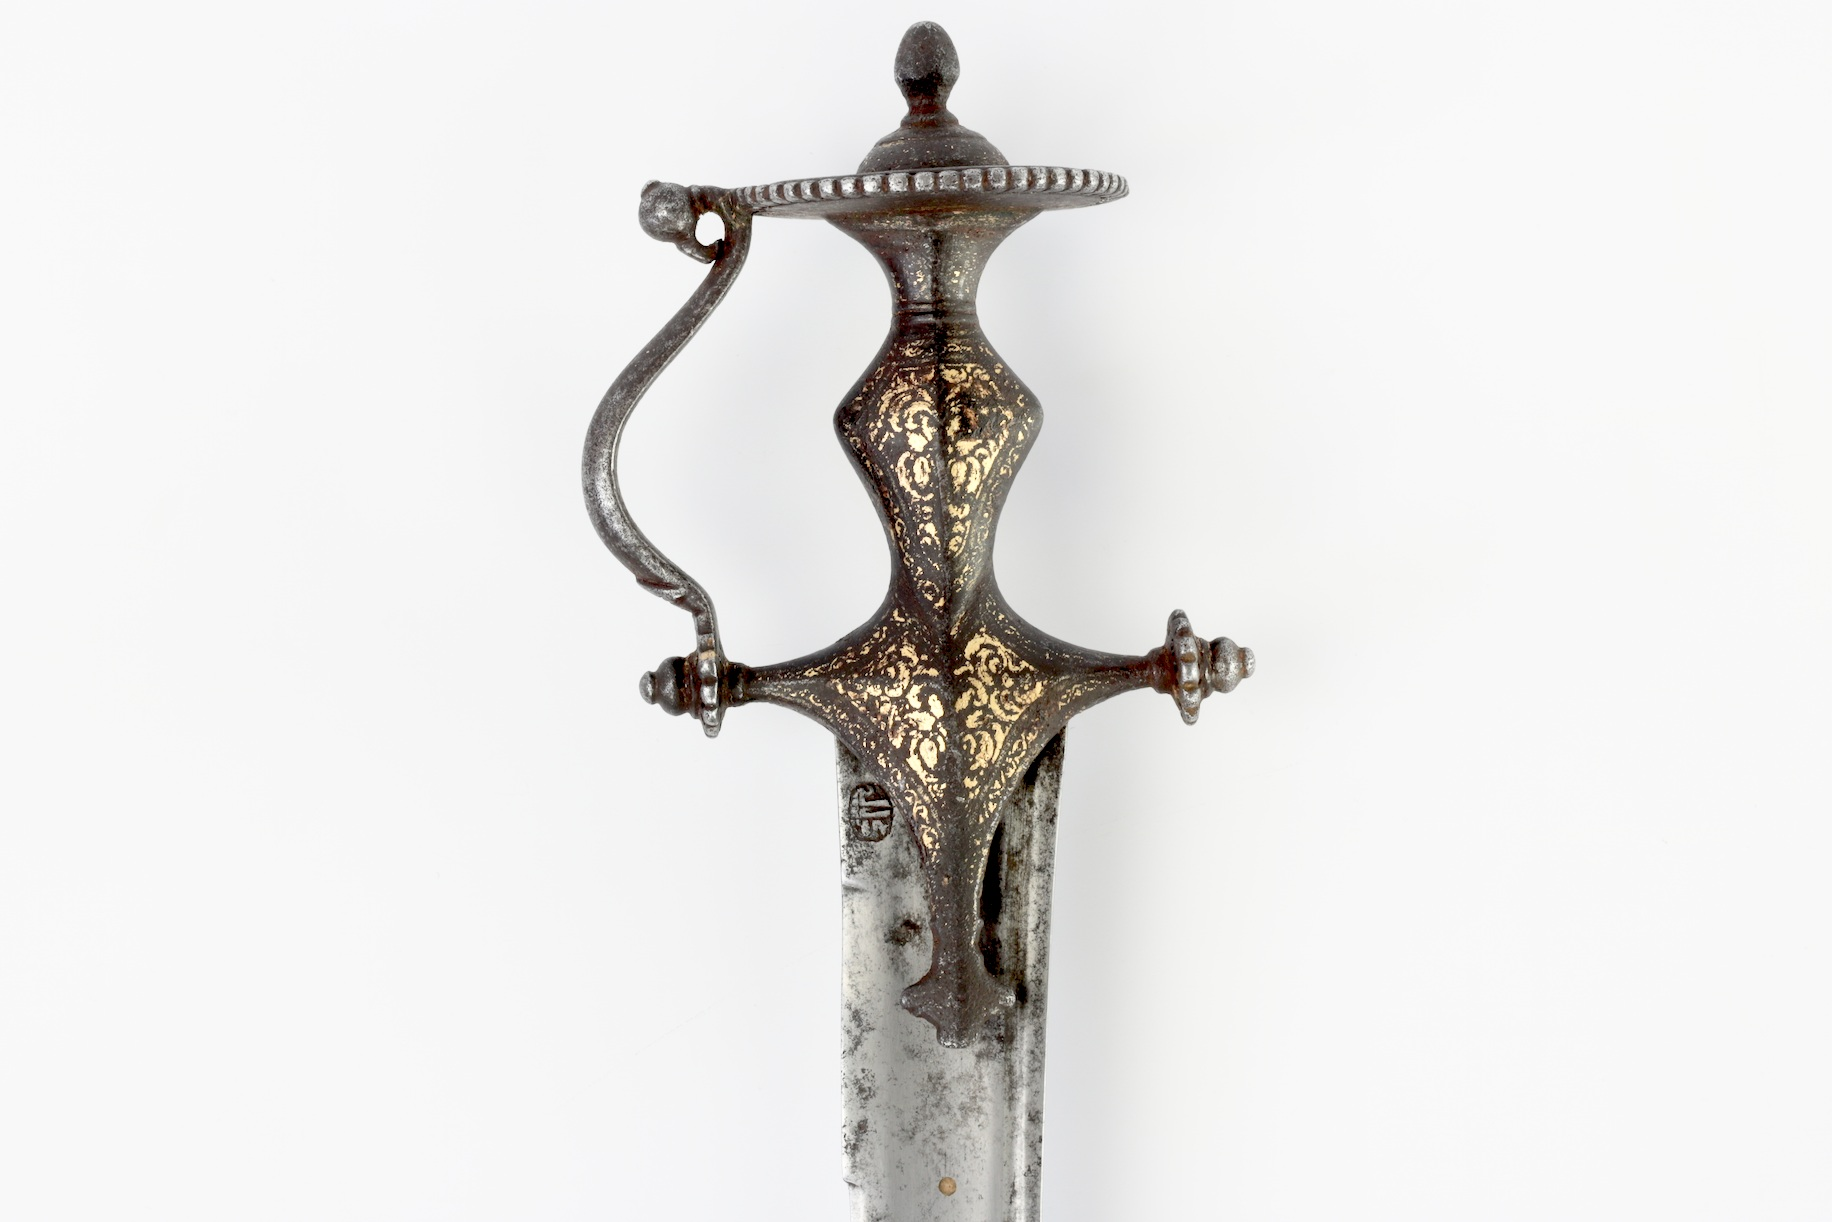 An Indian sword with an inset brass disc. (Source:  Mandarin Mansion )